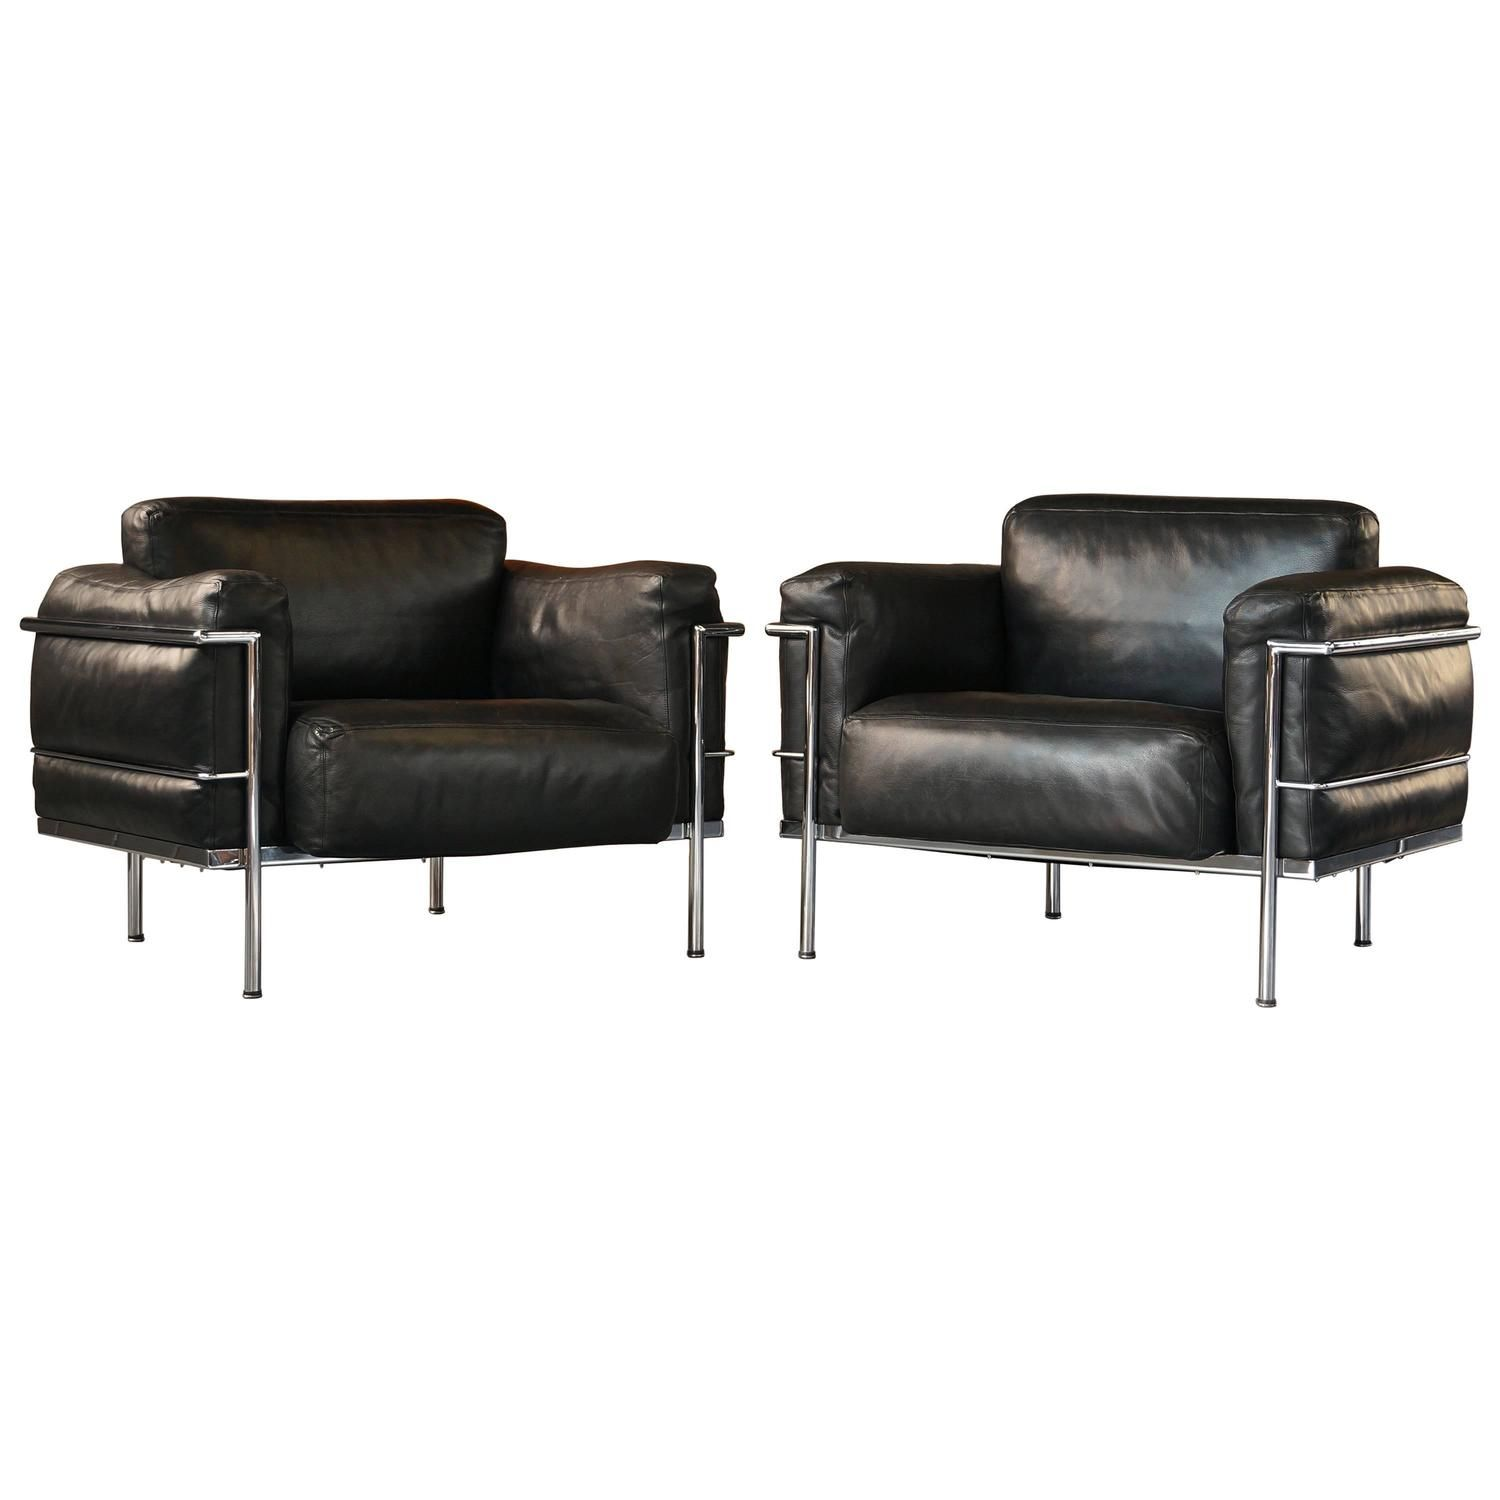 Pair Of Vintage Leather Le Corbusier Grand Confort Lc3 Lounge Chairs Or Armchair Leather Lounge Lounge Chair Chair